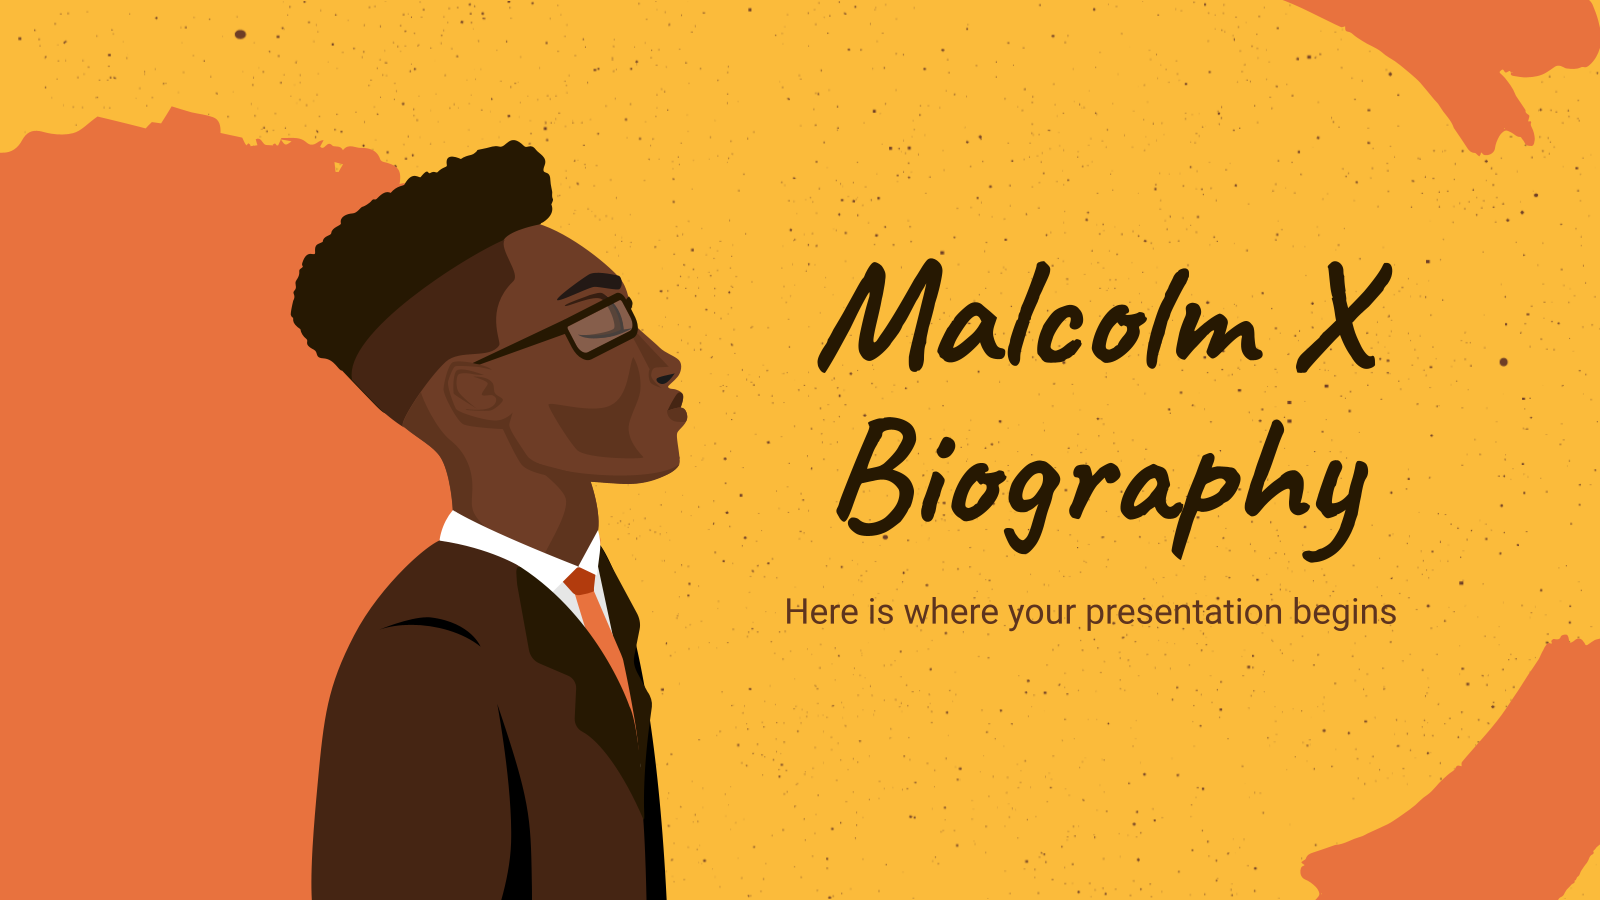 Malcolm X Biography presentation template